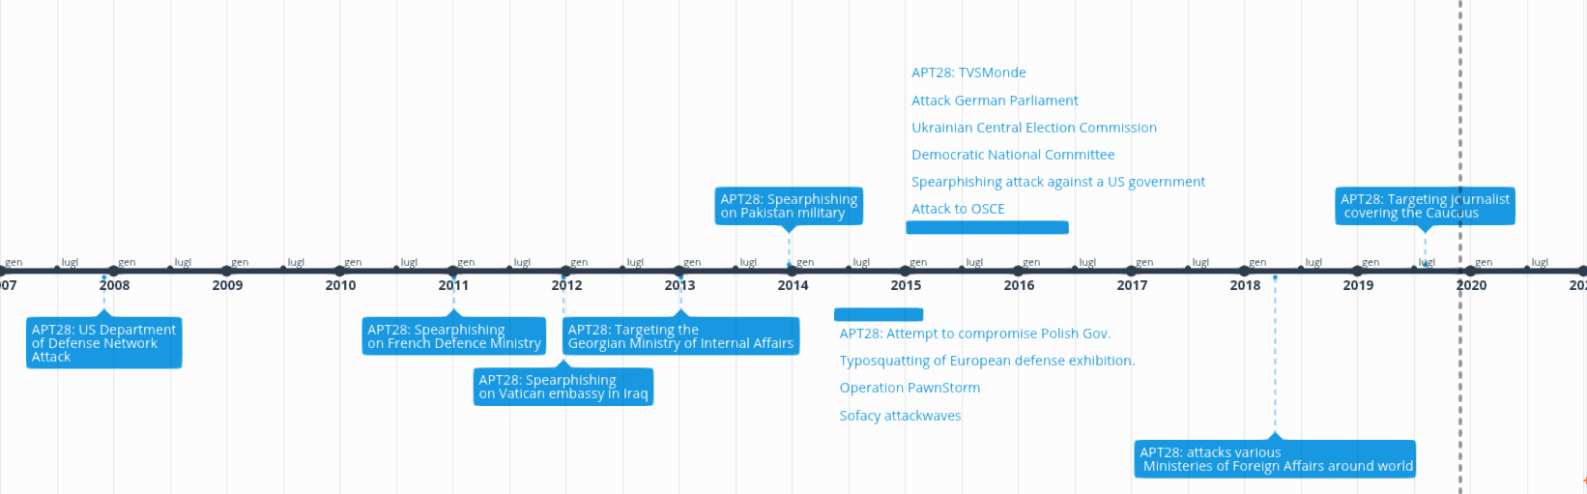 The evolutions of APT28 attacks